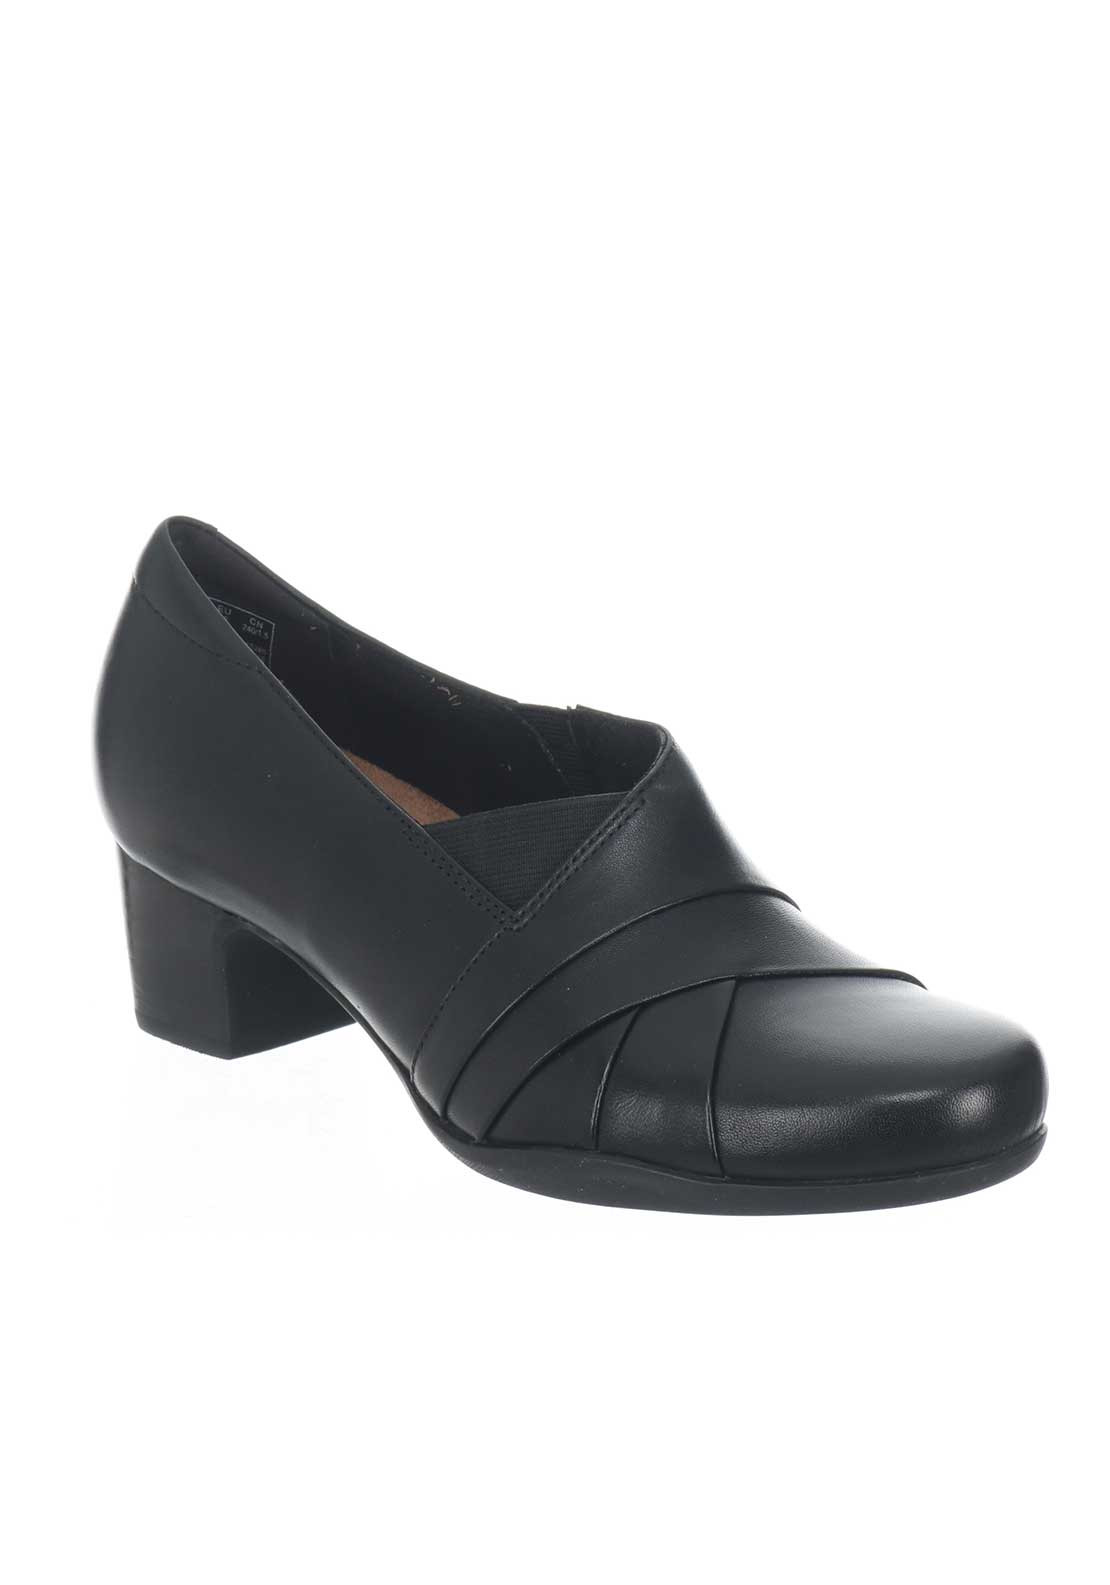 Clarks Womens Rosalyn Adele Leather Shoes, Black